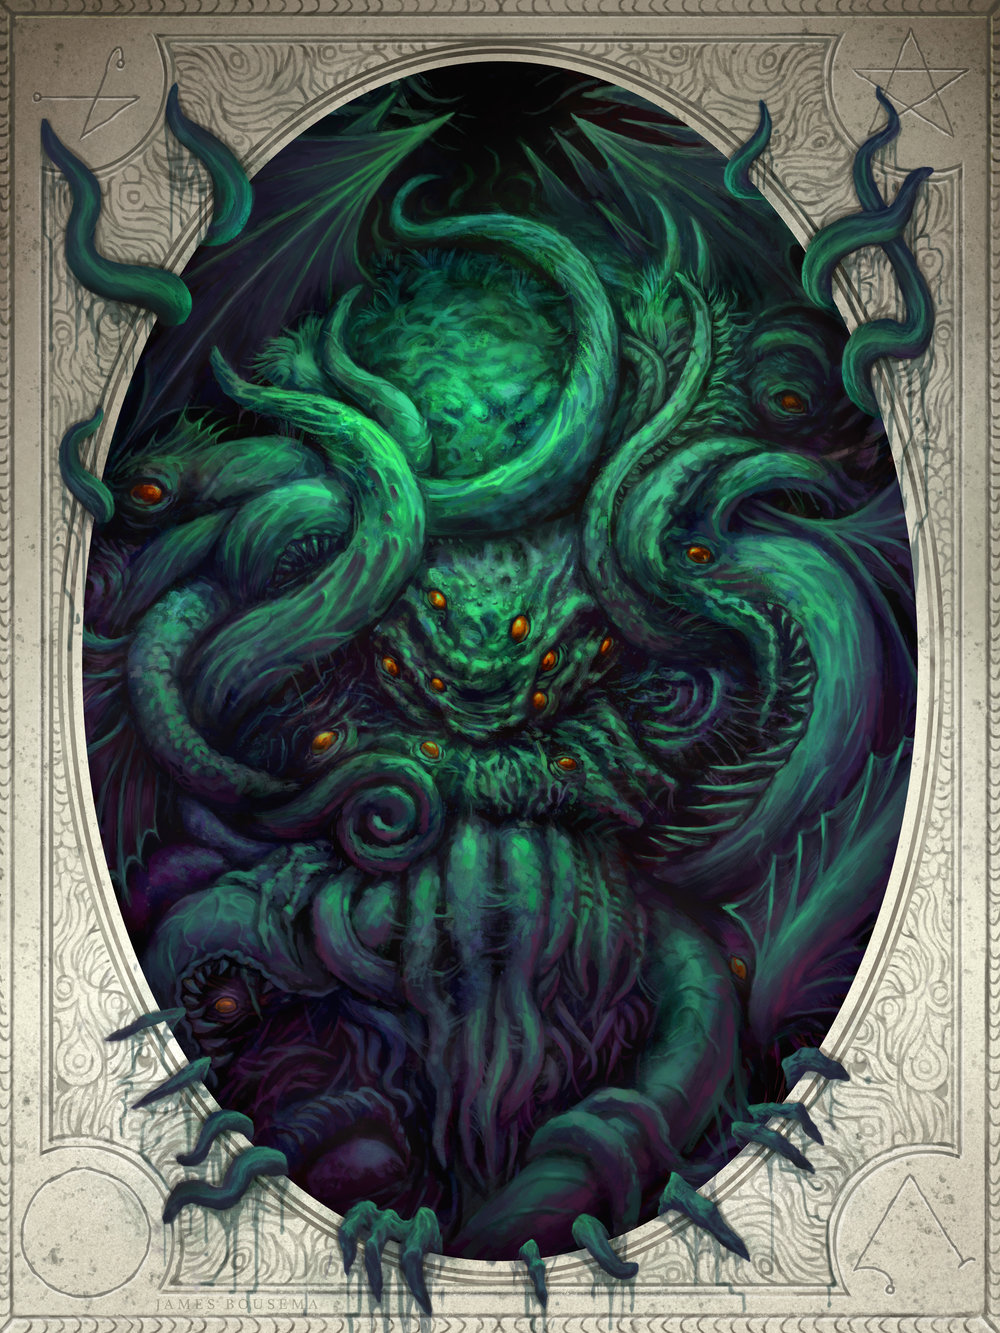 """In his house at R'lyeh dead Cthulhu waits dreaming."" - H.P. Lovecraft Done in Photoshop CS6"